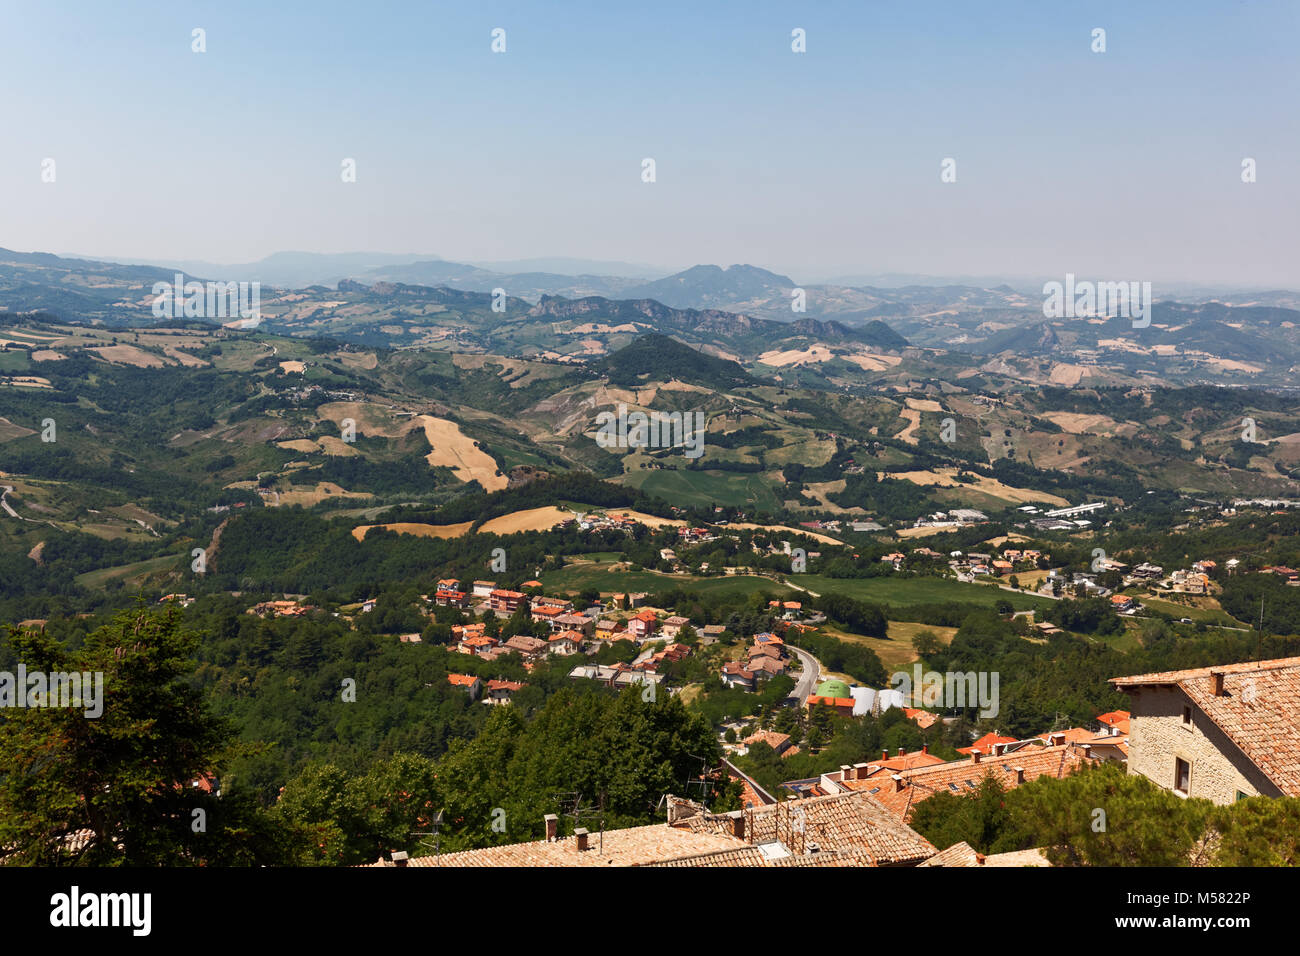 Landscape of San Marino and Italy viewed from the Piazza Liberta in San Marino city - Stock Image